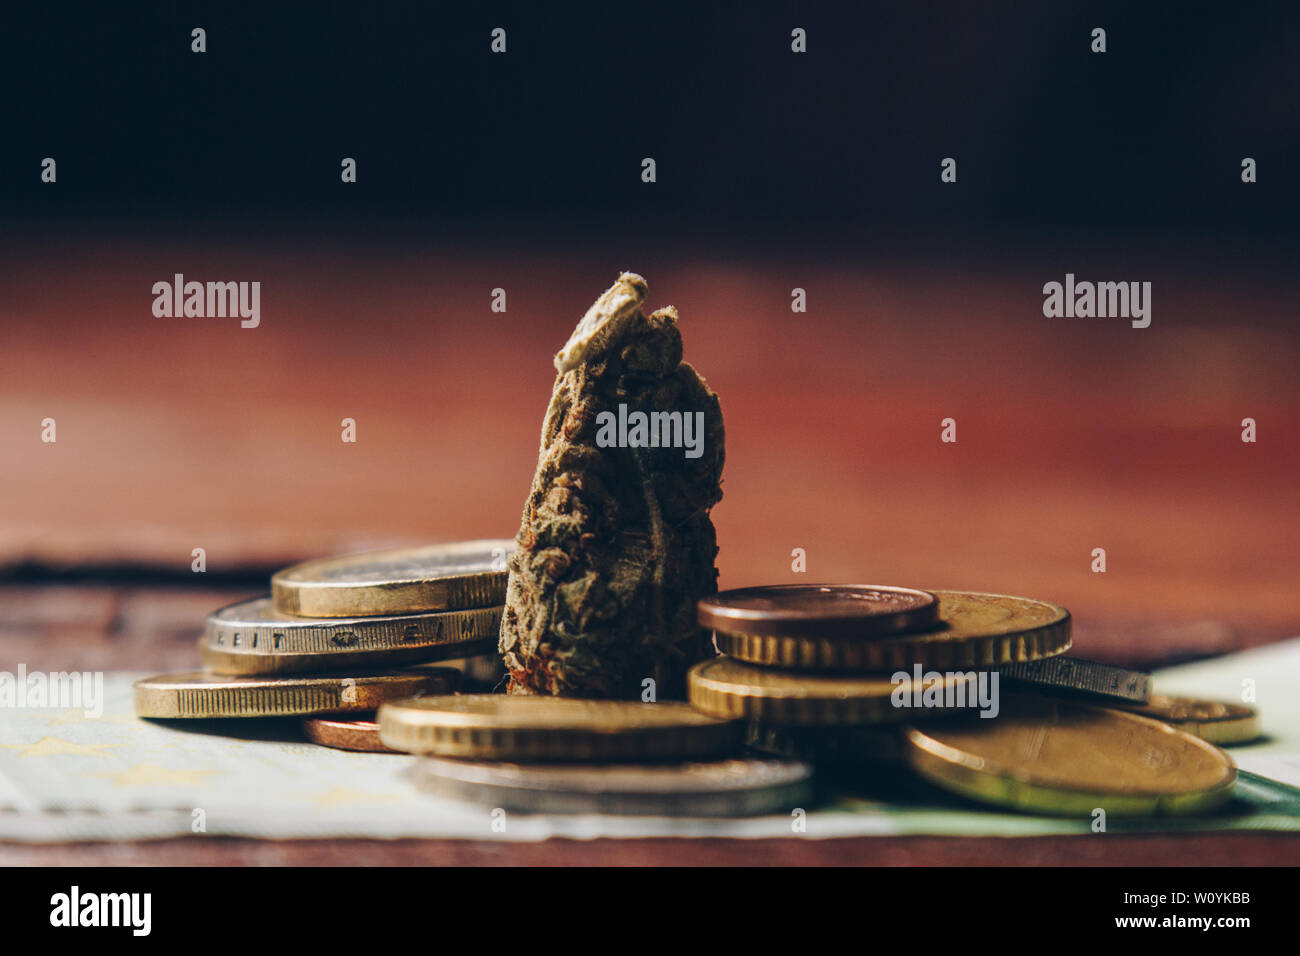 Cannabis Coin Stock Photos & Cannabis Coin Stock Images - Alamy